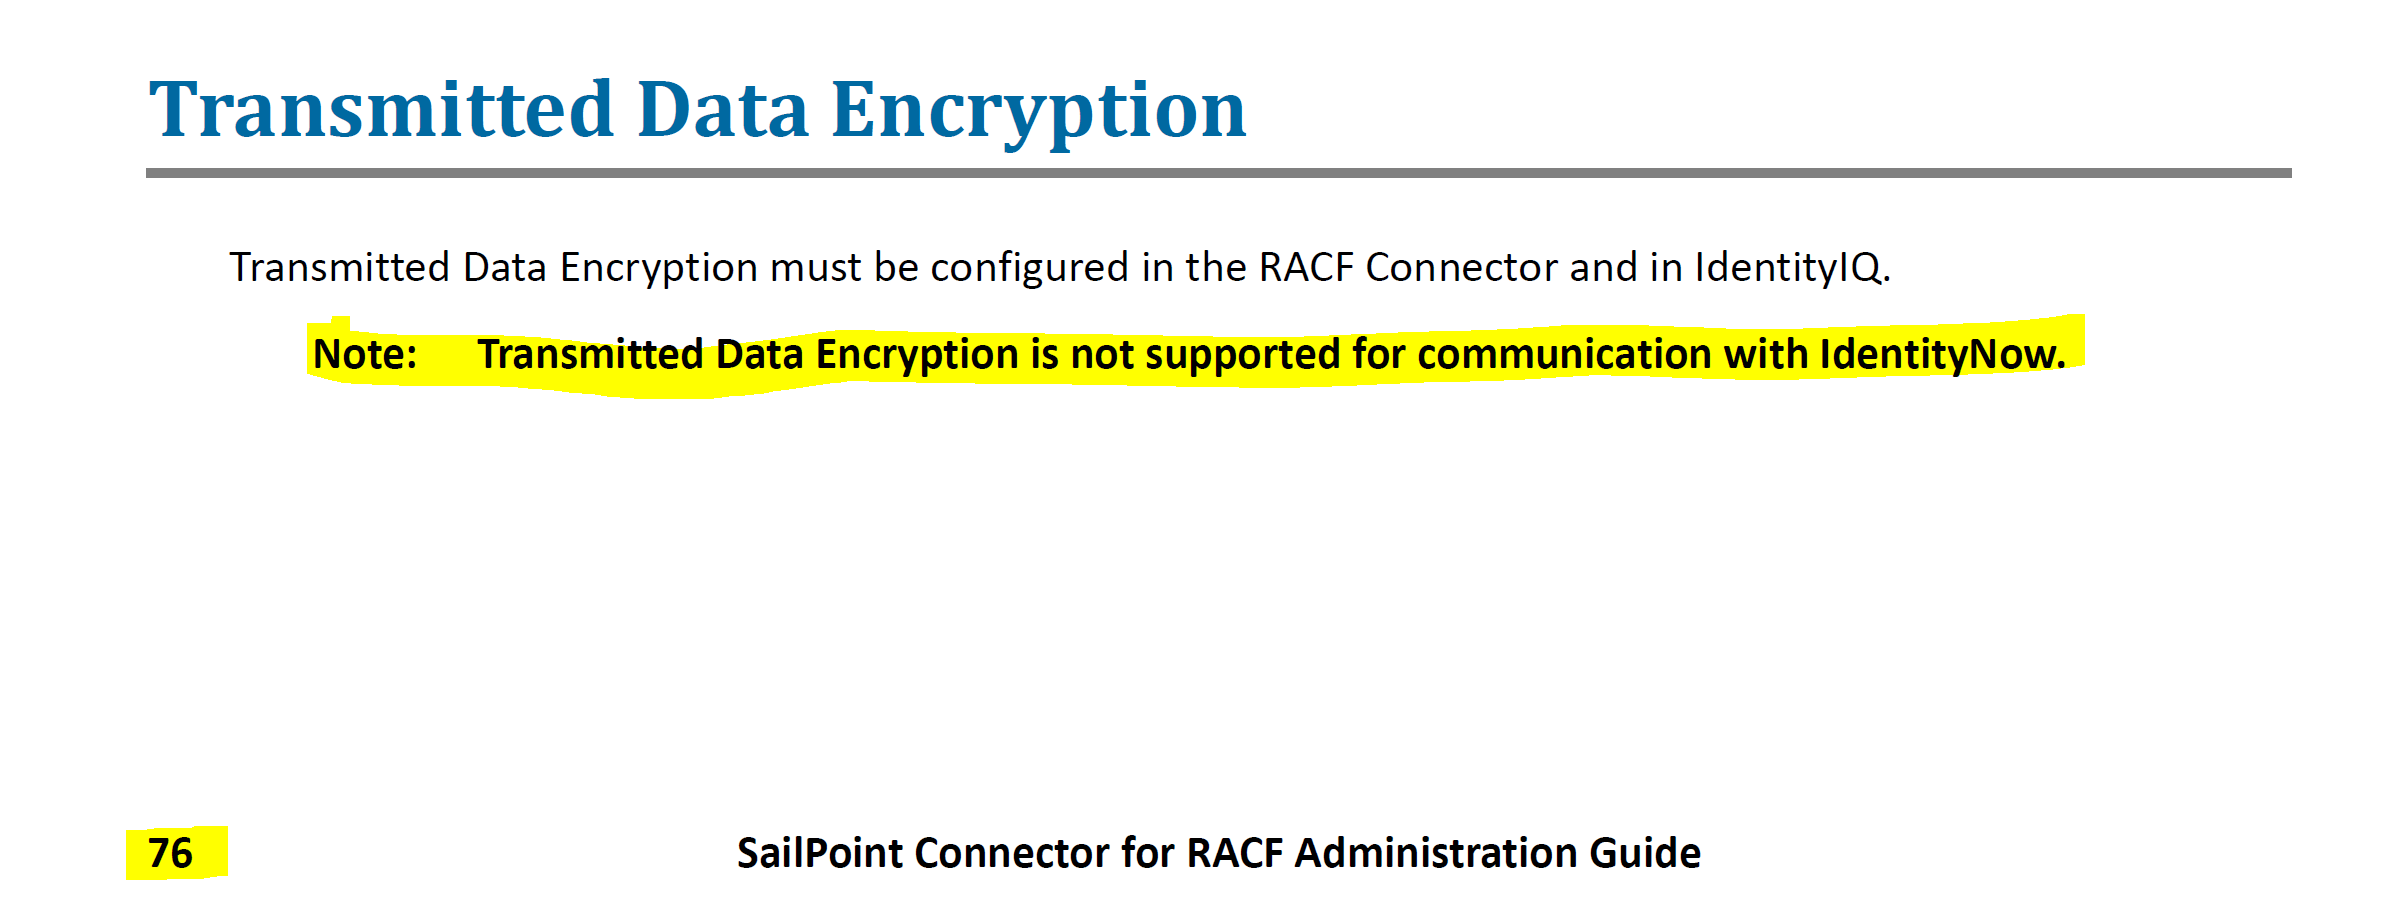 IdentityNow RACF Source - Transmitted Data Encryption